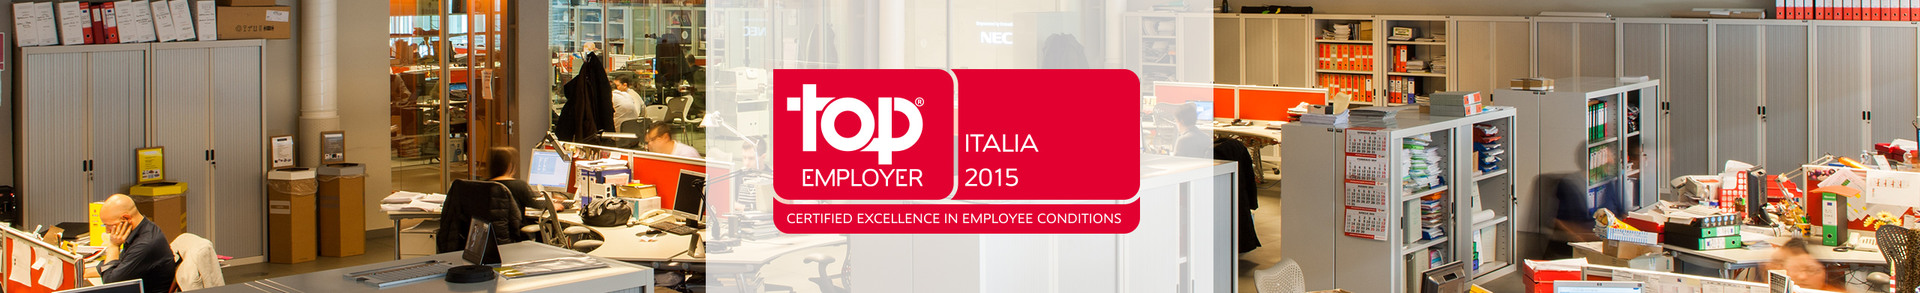 ELICA TOP EMPLOYERS 2015